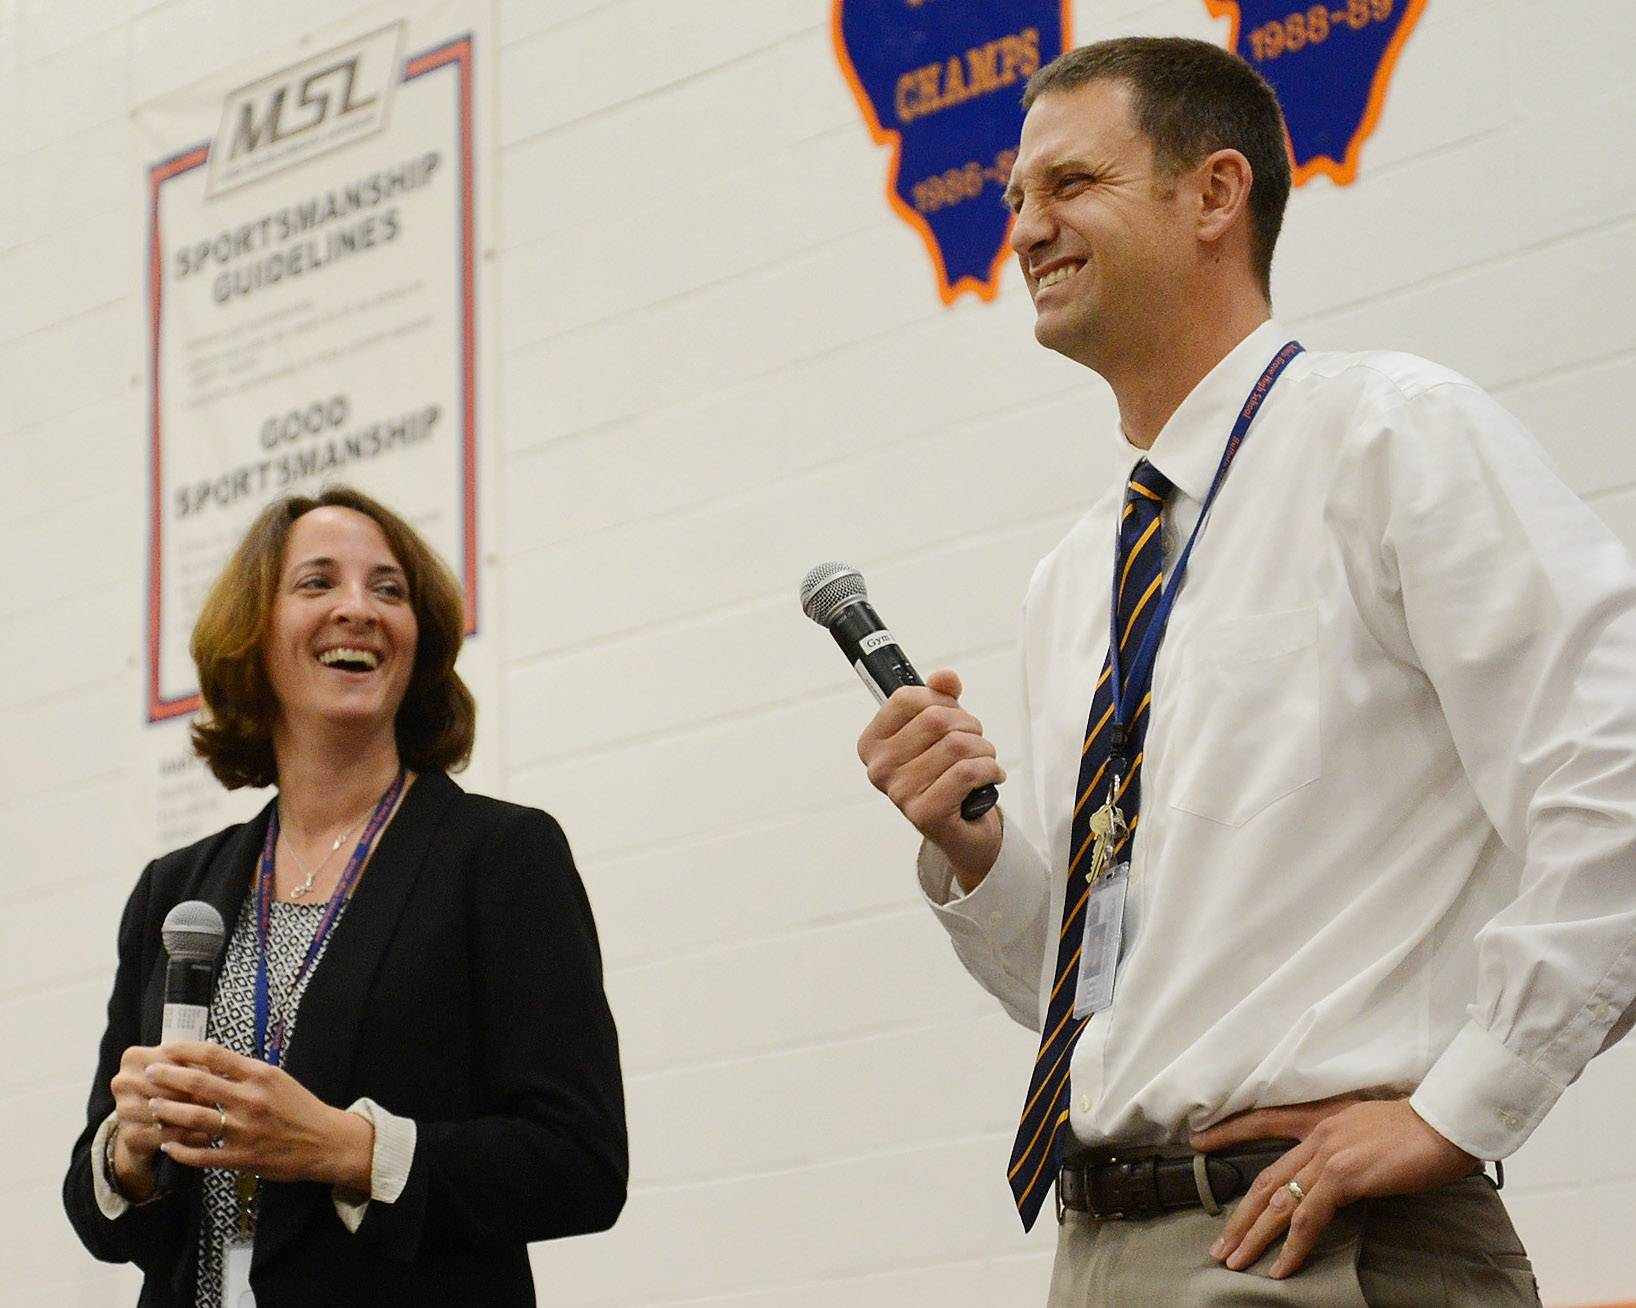 New Buffalo Grove High School principal Jeff Wardle and associate principal Jill Maraldo compete in a game show answering  questions about themselves and how much knowledge they have of Buffalo Grove High School, during a back to school pep-rally to kick off the first day of school.